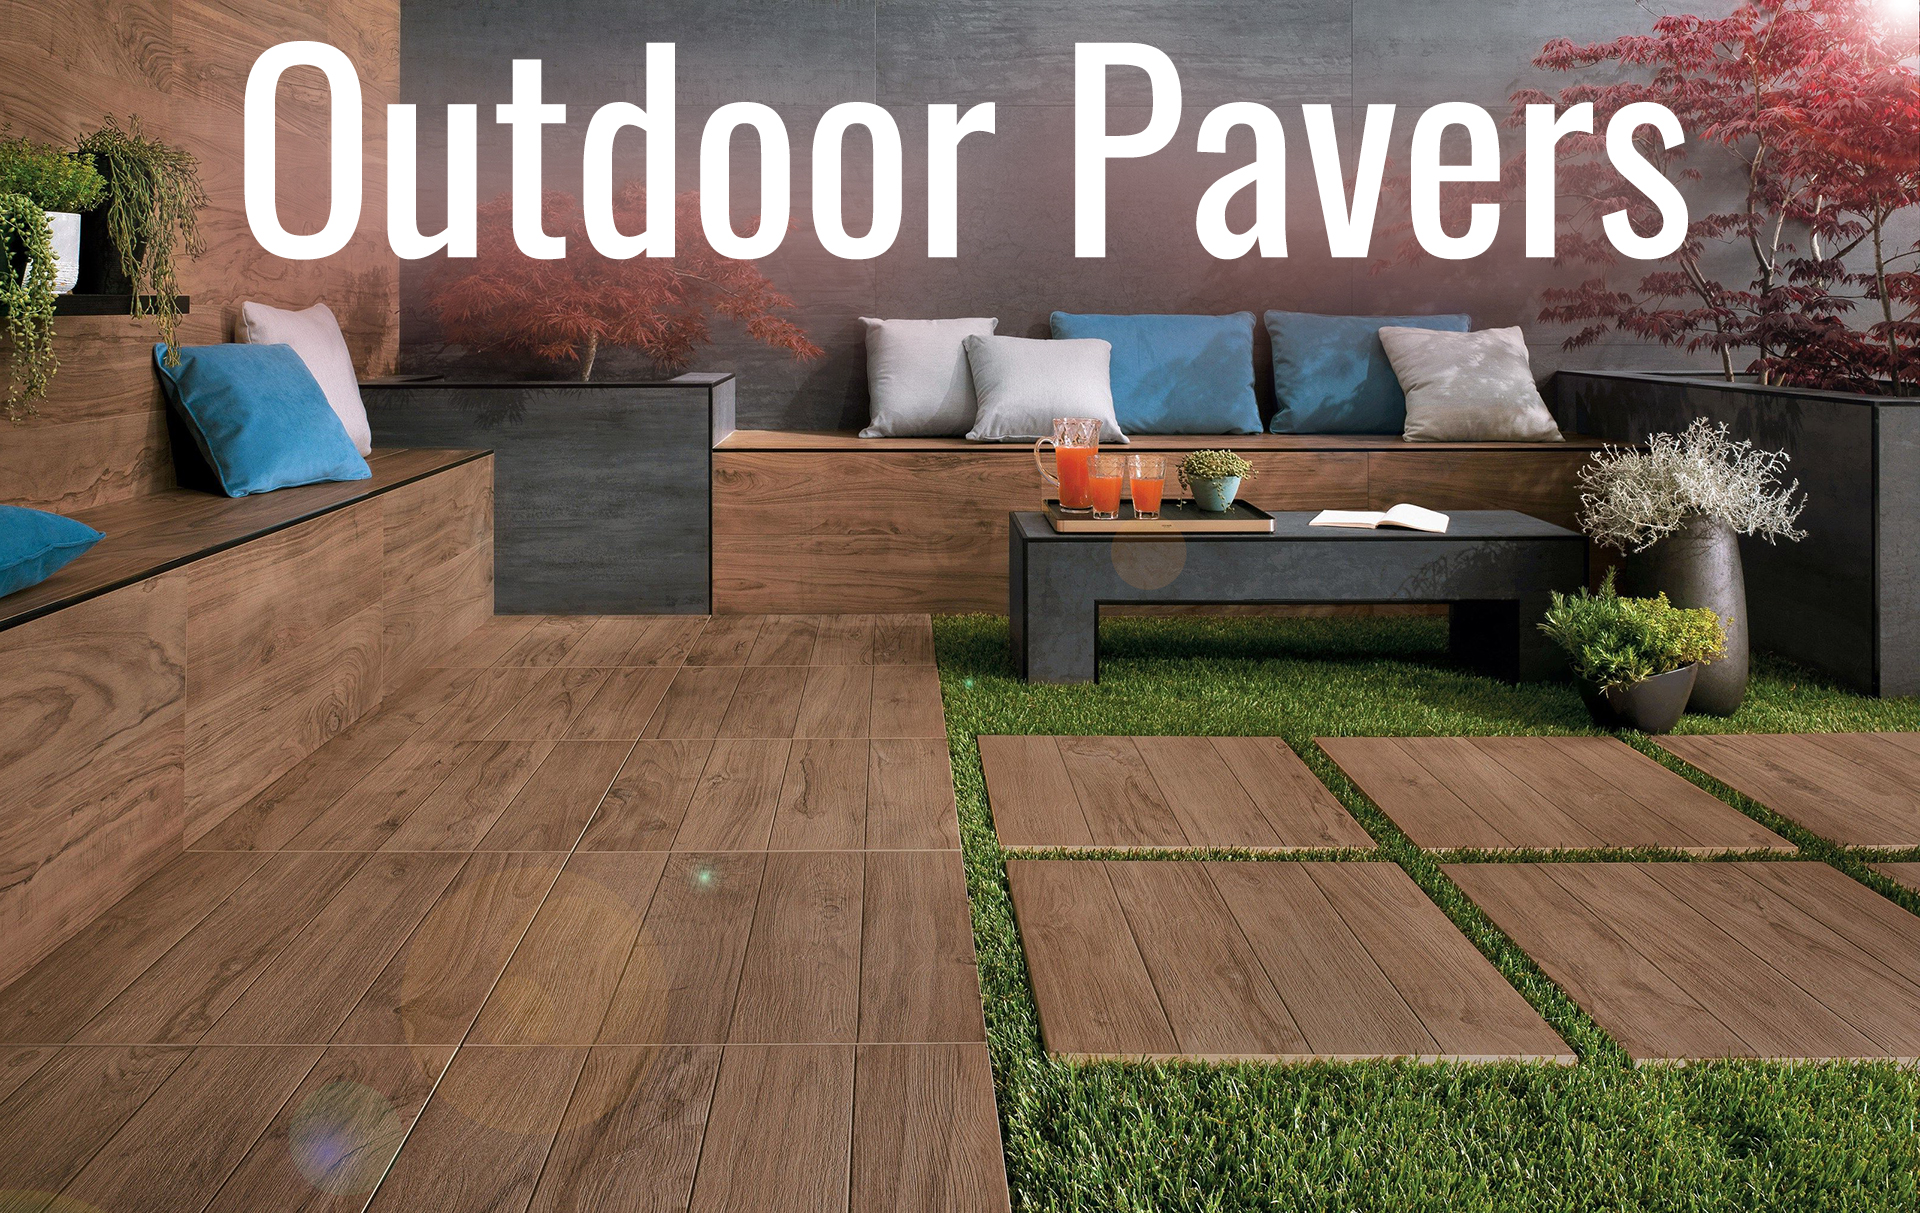 Shop By Type Outdoor Paver Tiles TilesDirect Store - Ceramic pavers outdoors